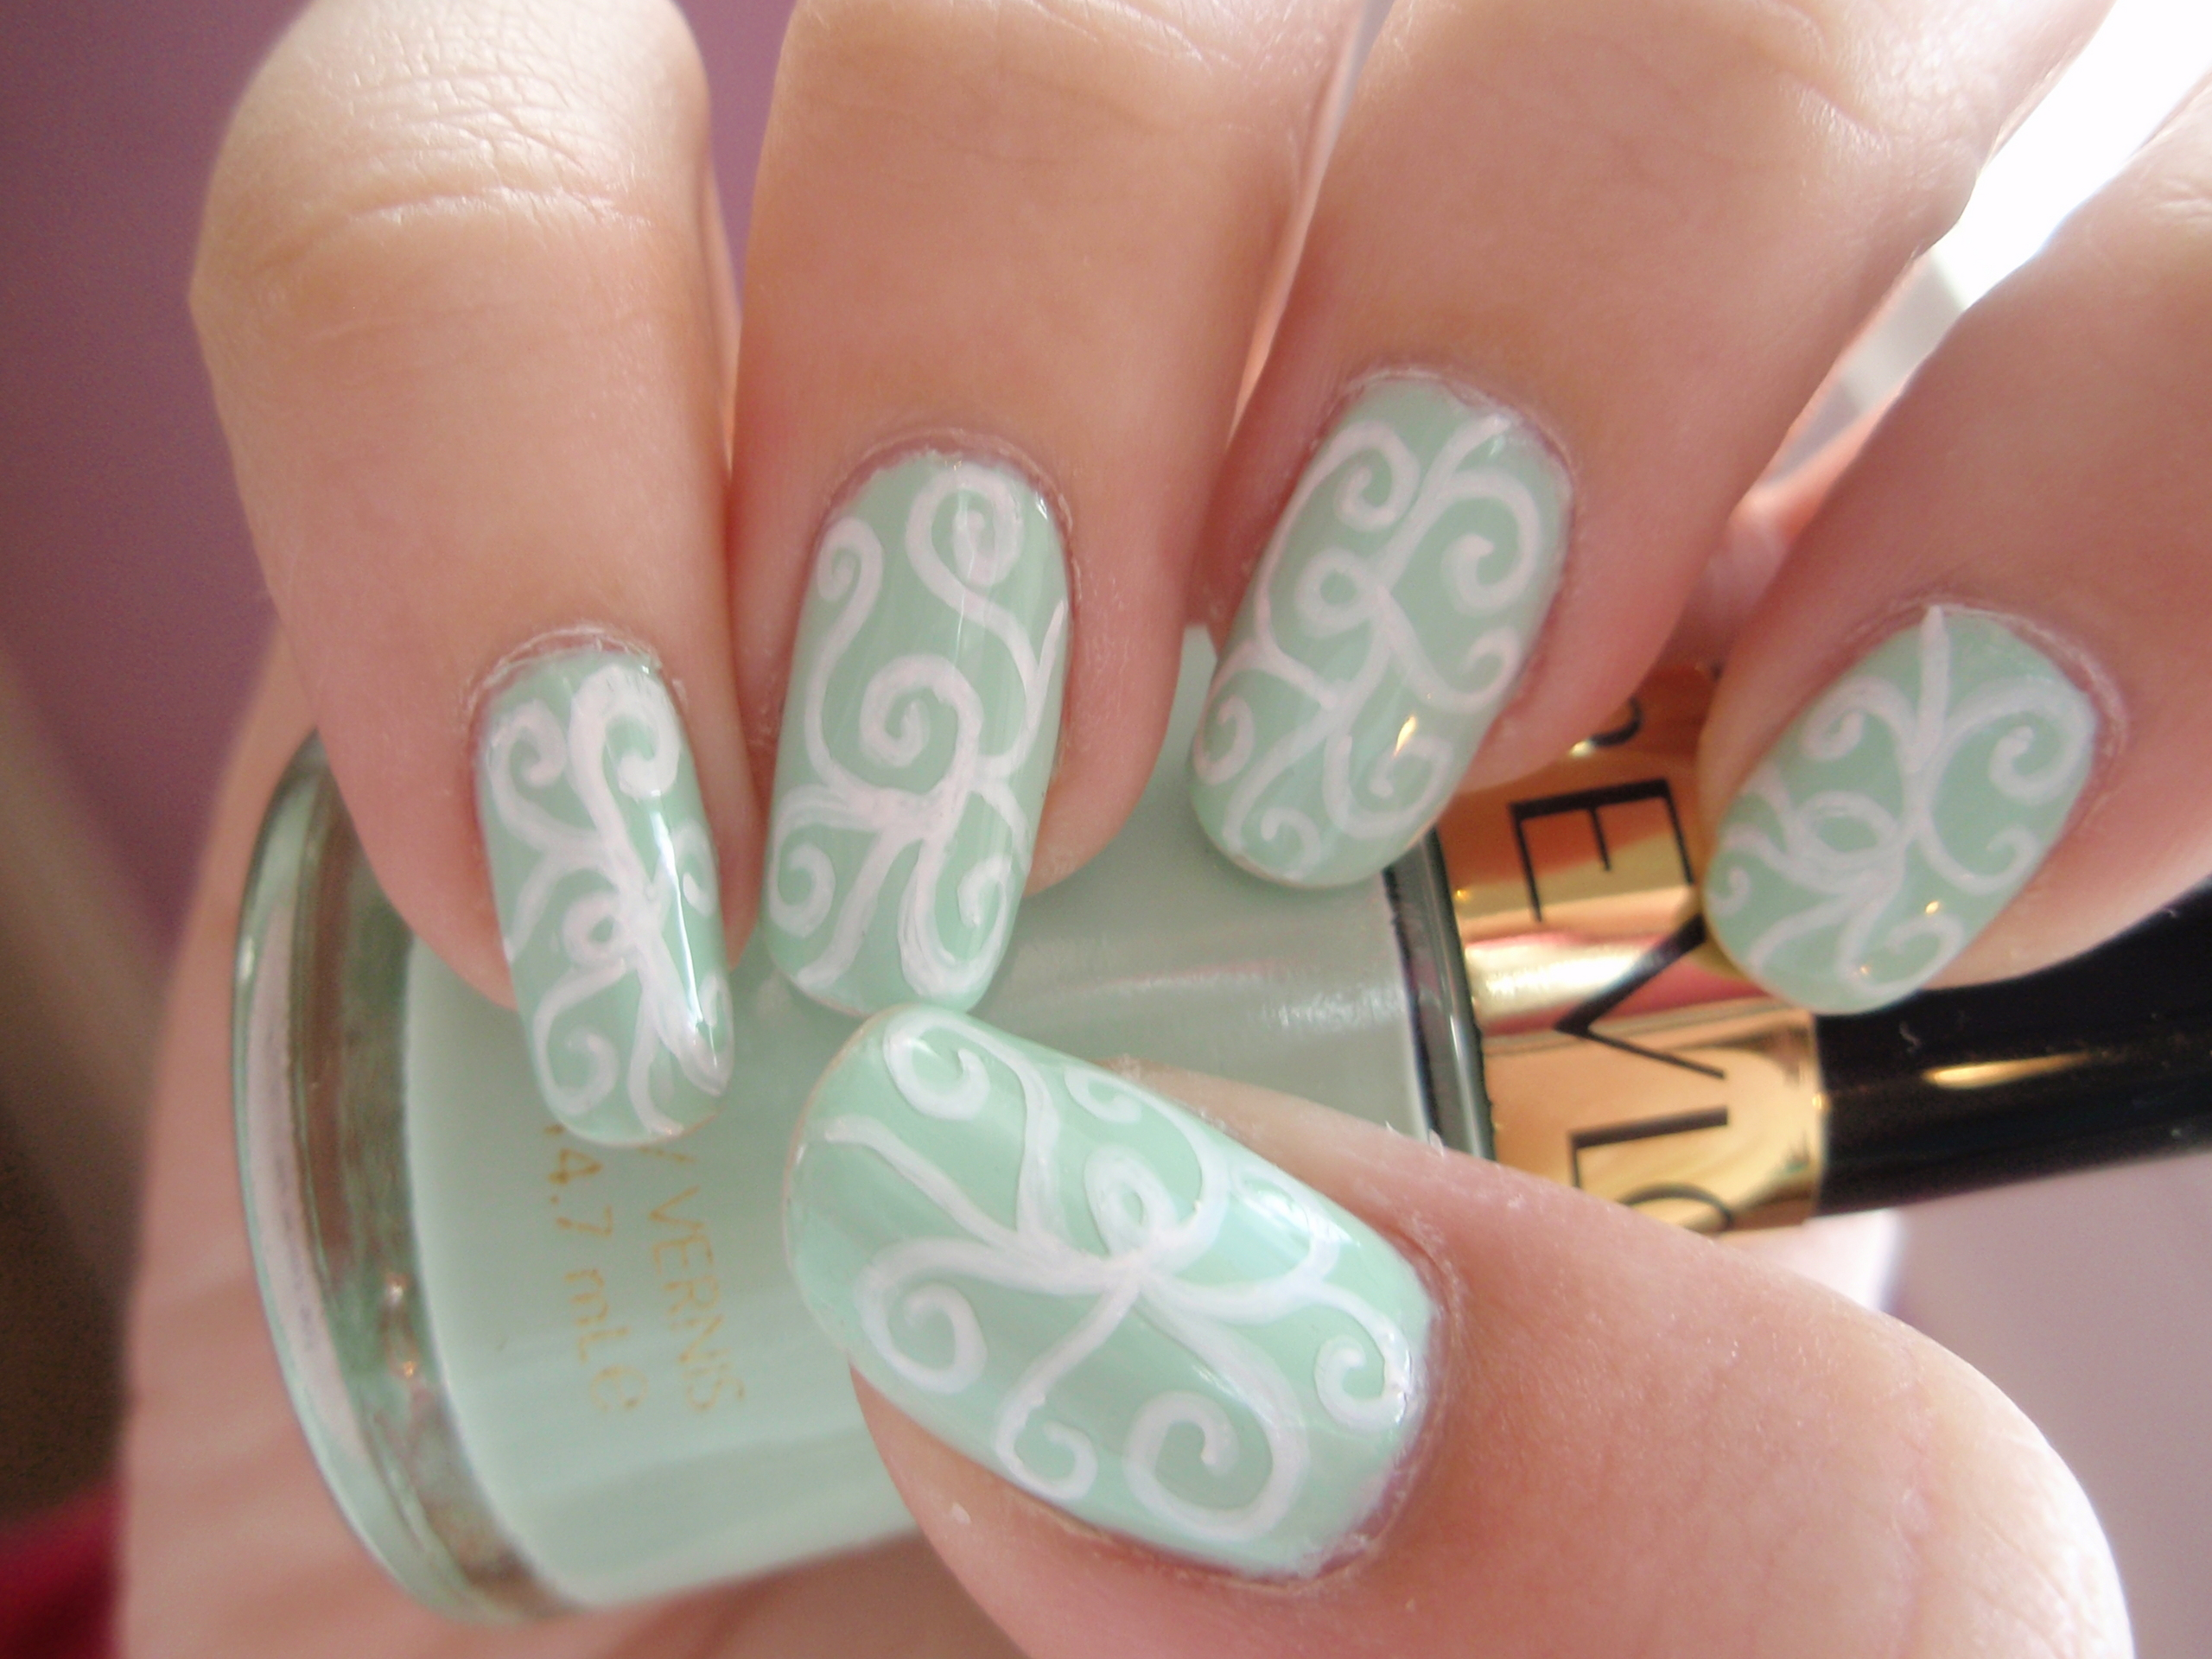 awesome nail art - Nails, Nail Art Wallpaper (23708323) - Fanpop